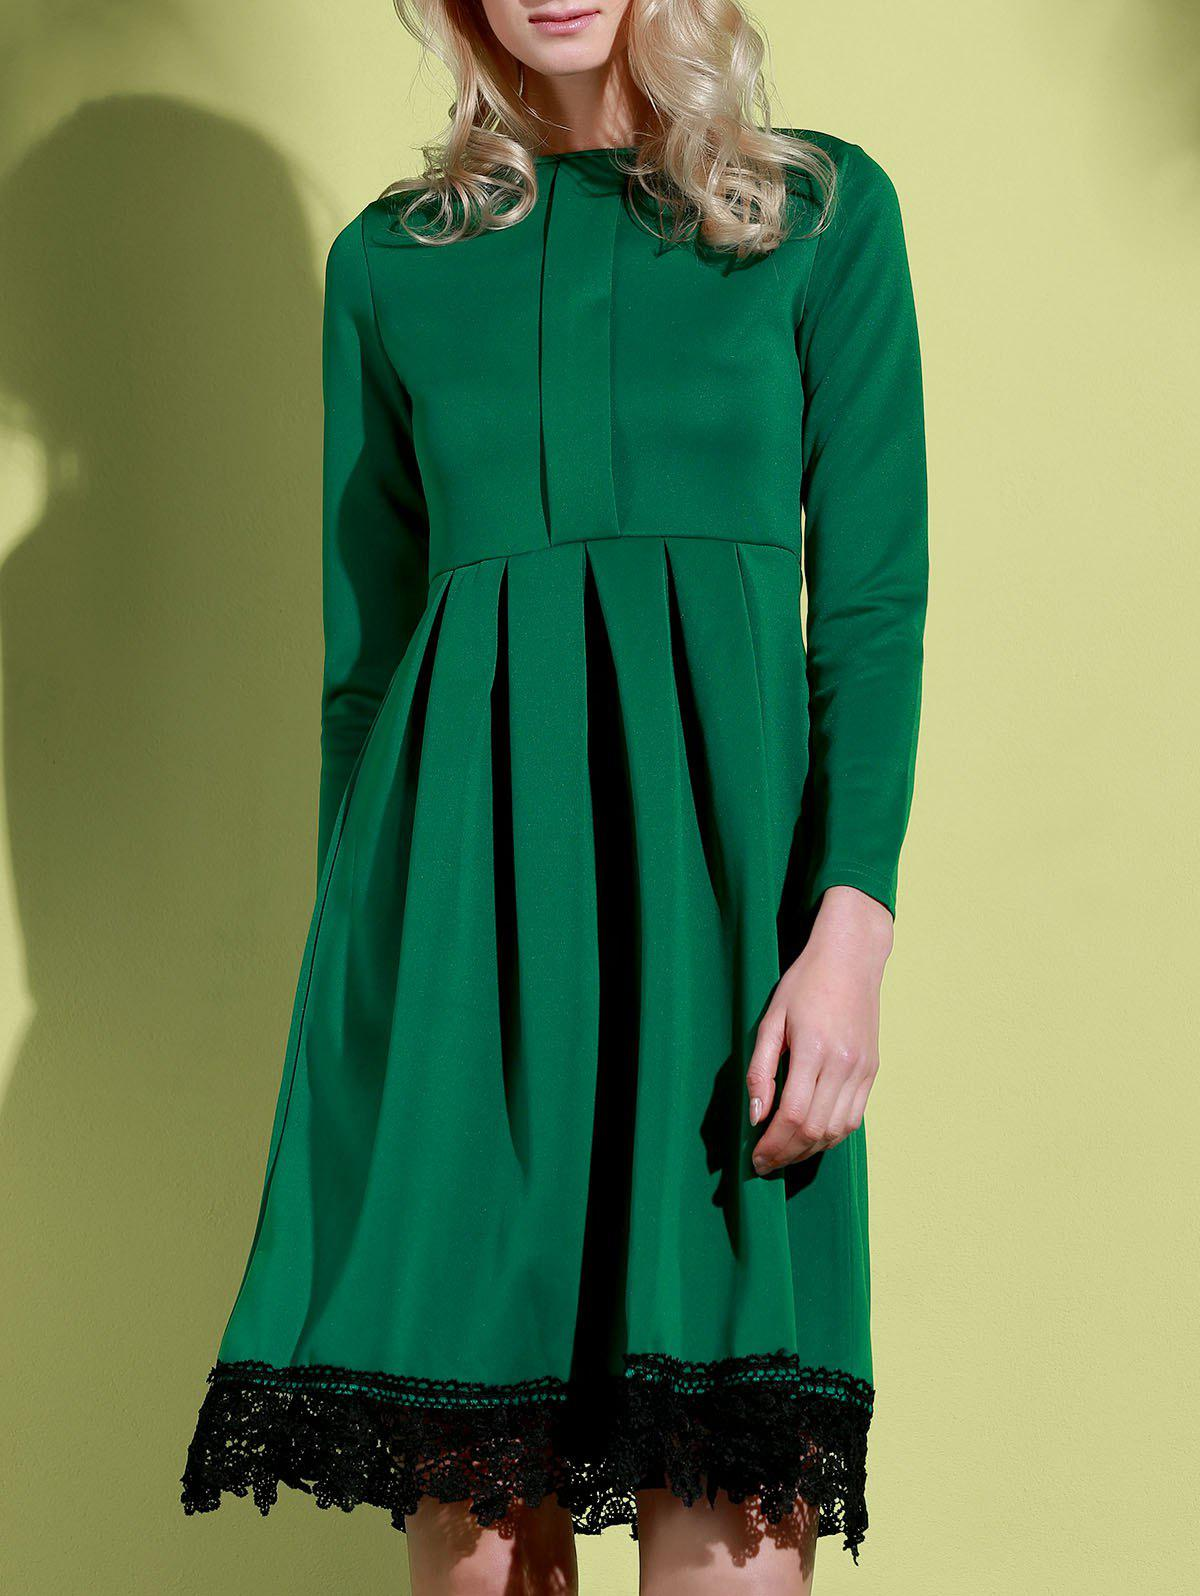 Attractive Round Collar Lace Hem Long Sleeve Ruffled Dress For Women